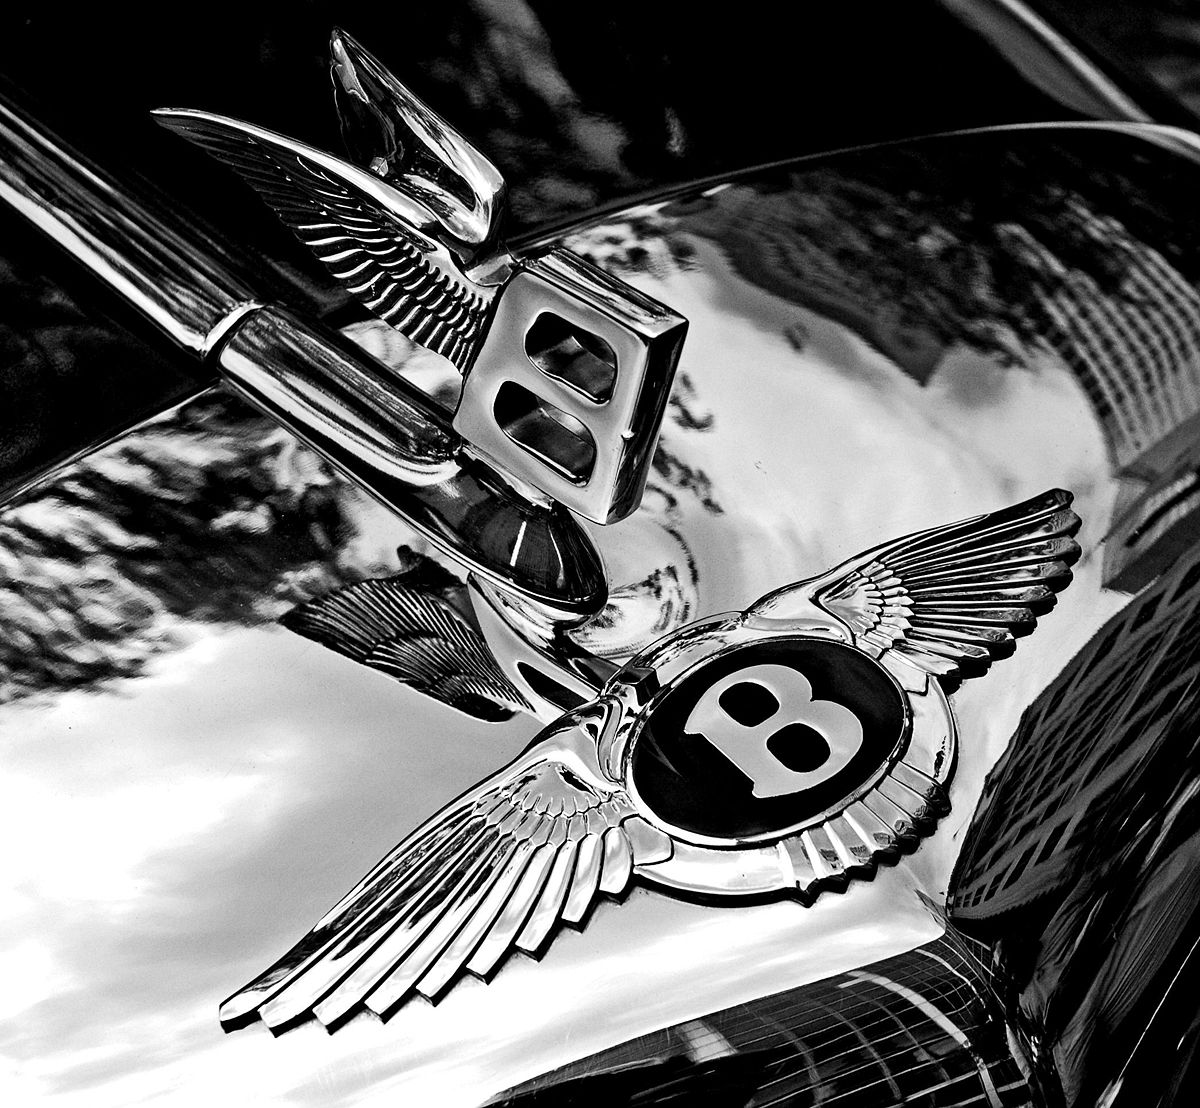 bentley - wikipedia